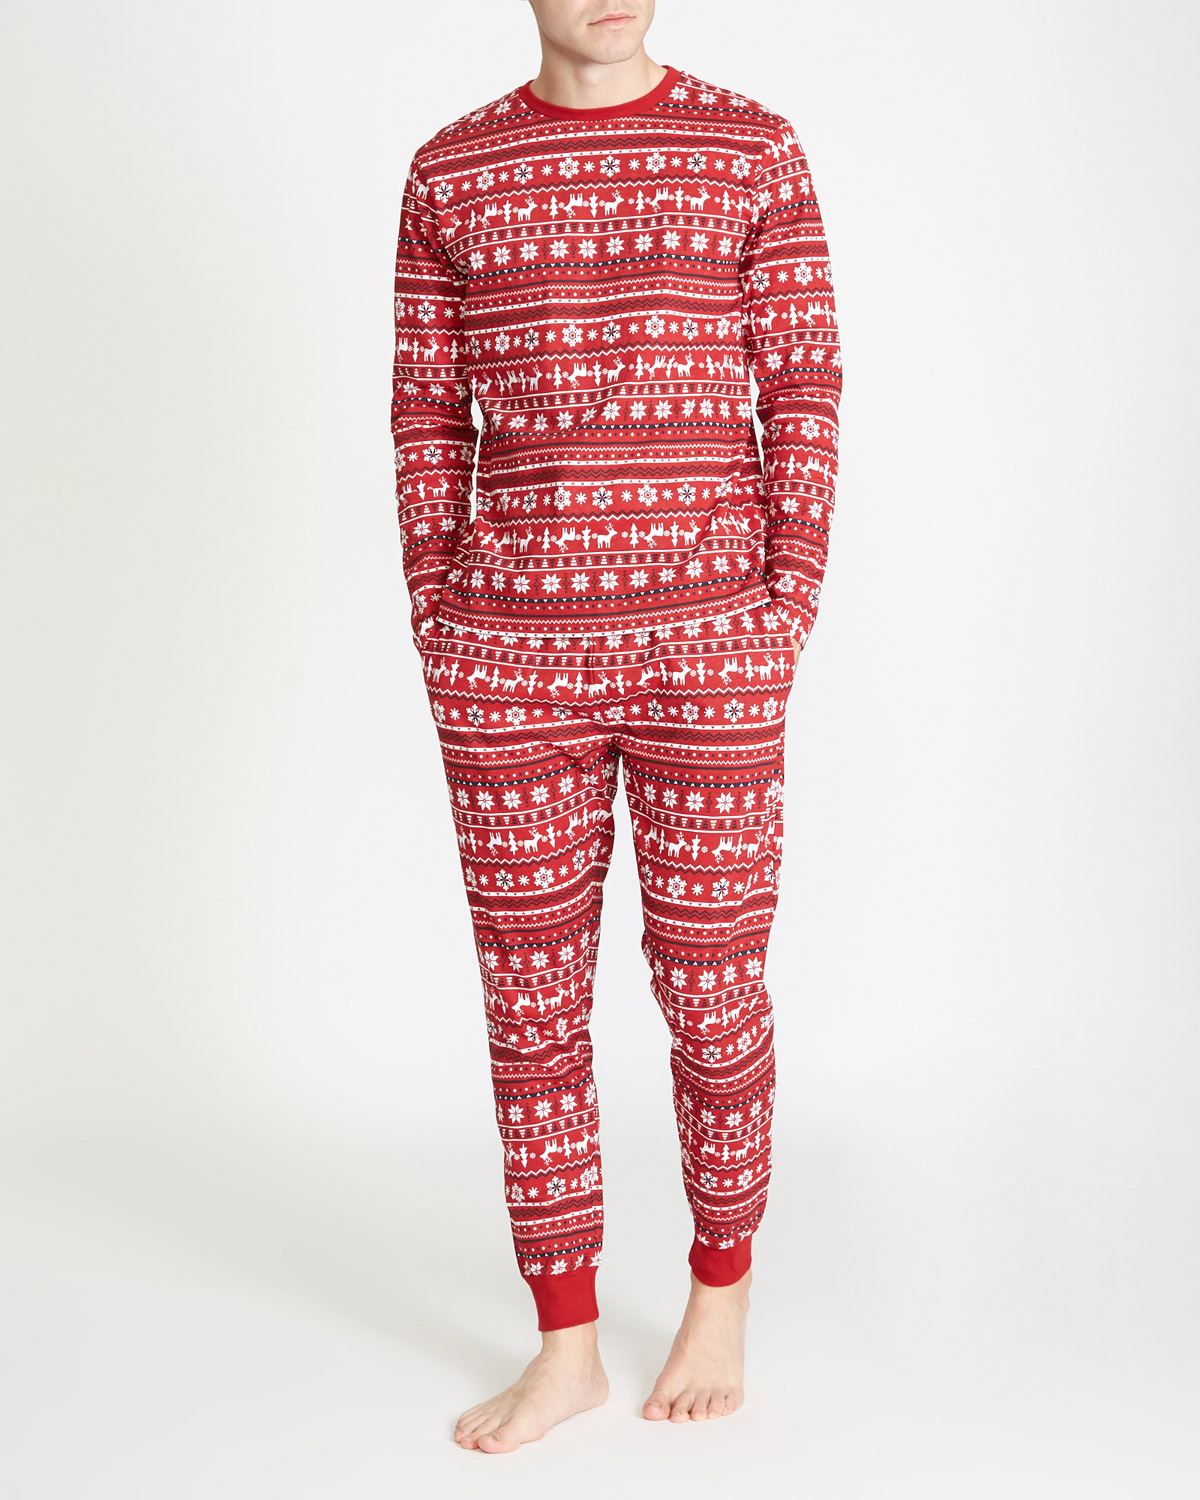 Mens Christmas Pajamas.Mens Christmas Family Pyjamas